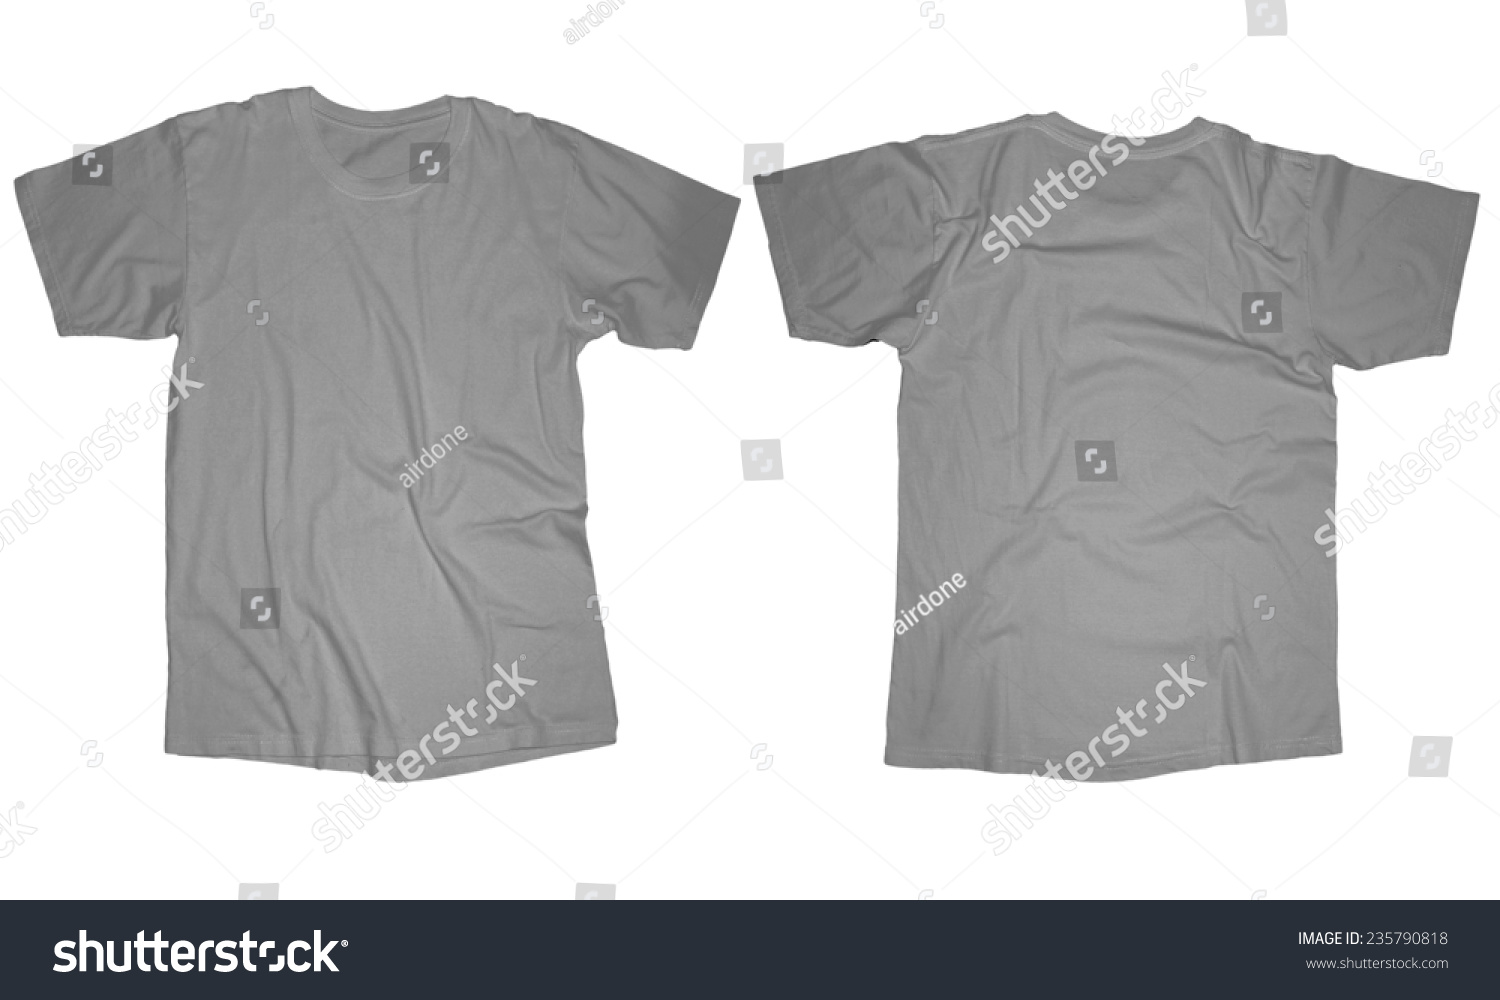 White t shirt front and back template - Wrinkled Blank Grey T Shirt Template Front And Back Design Isolated On White